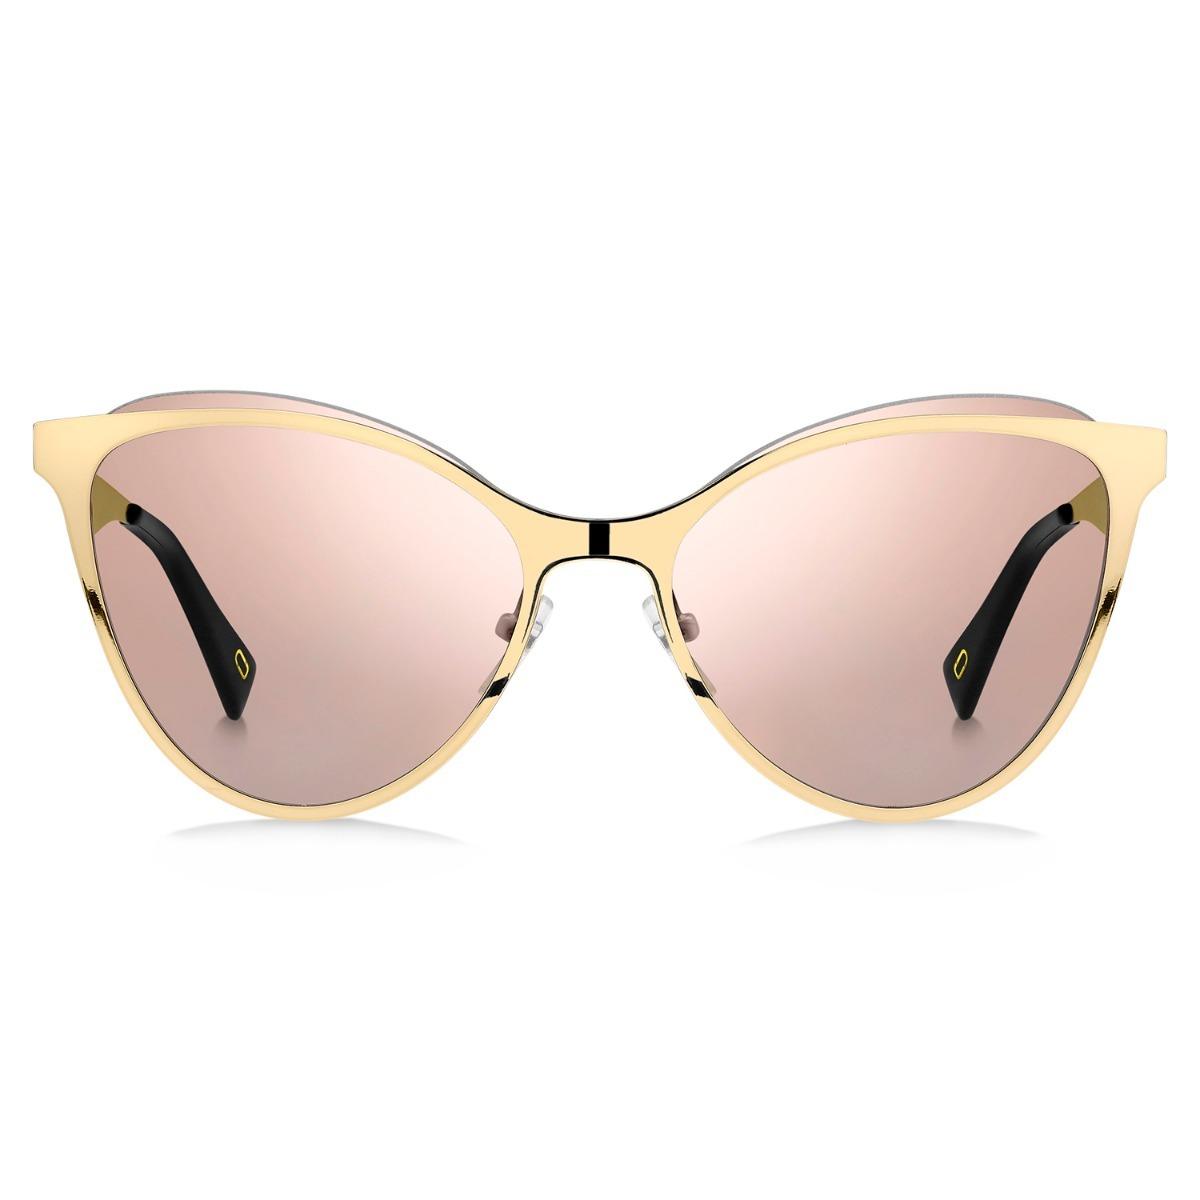 c8b8c53eec Lentes De Sol Marc Jacobs Originales 198/s Mujer Cat Eye ...